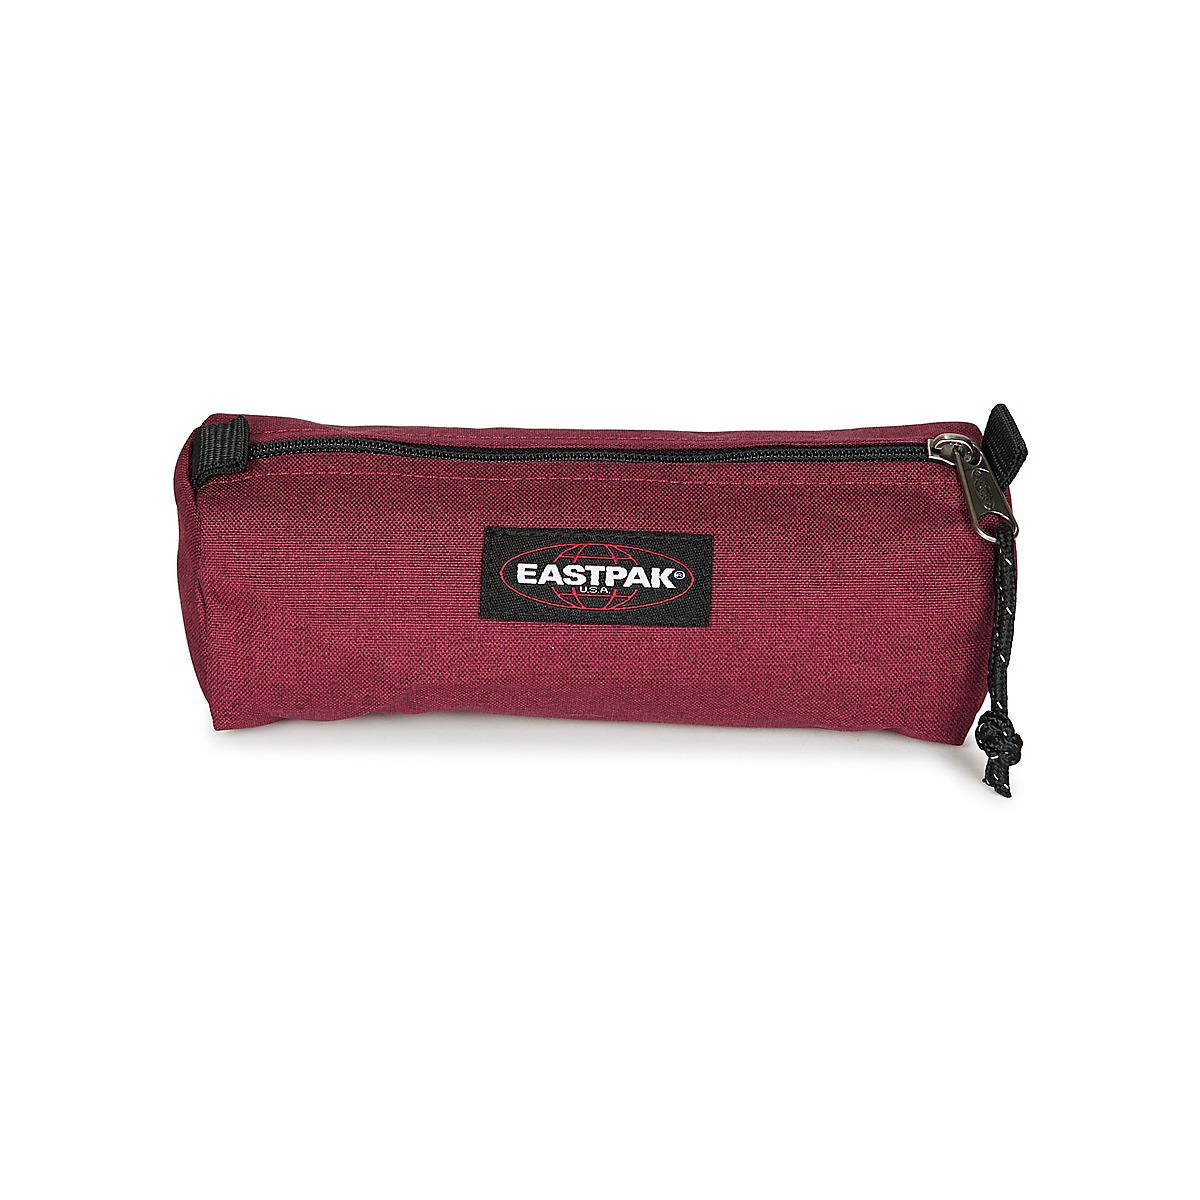 Trousse donna Eastpak  BENCHMARK SINGLE  Rosso